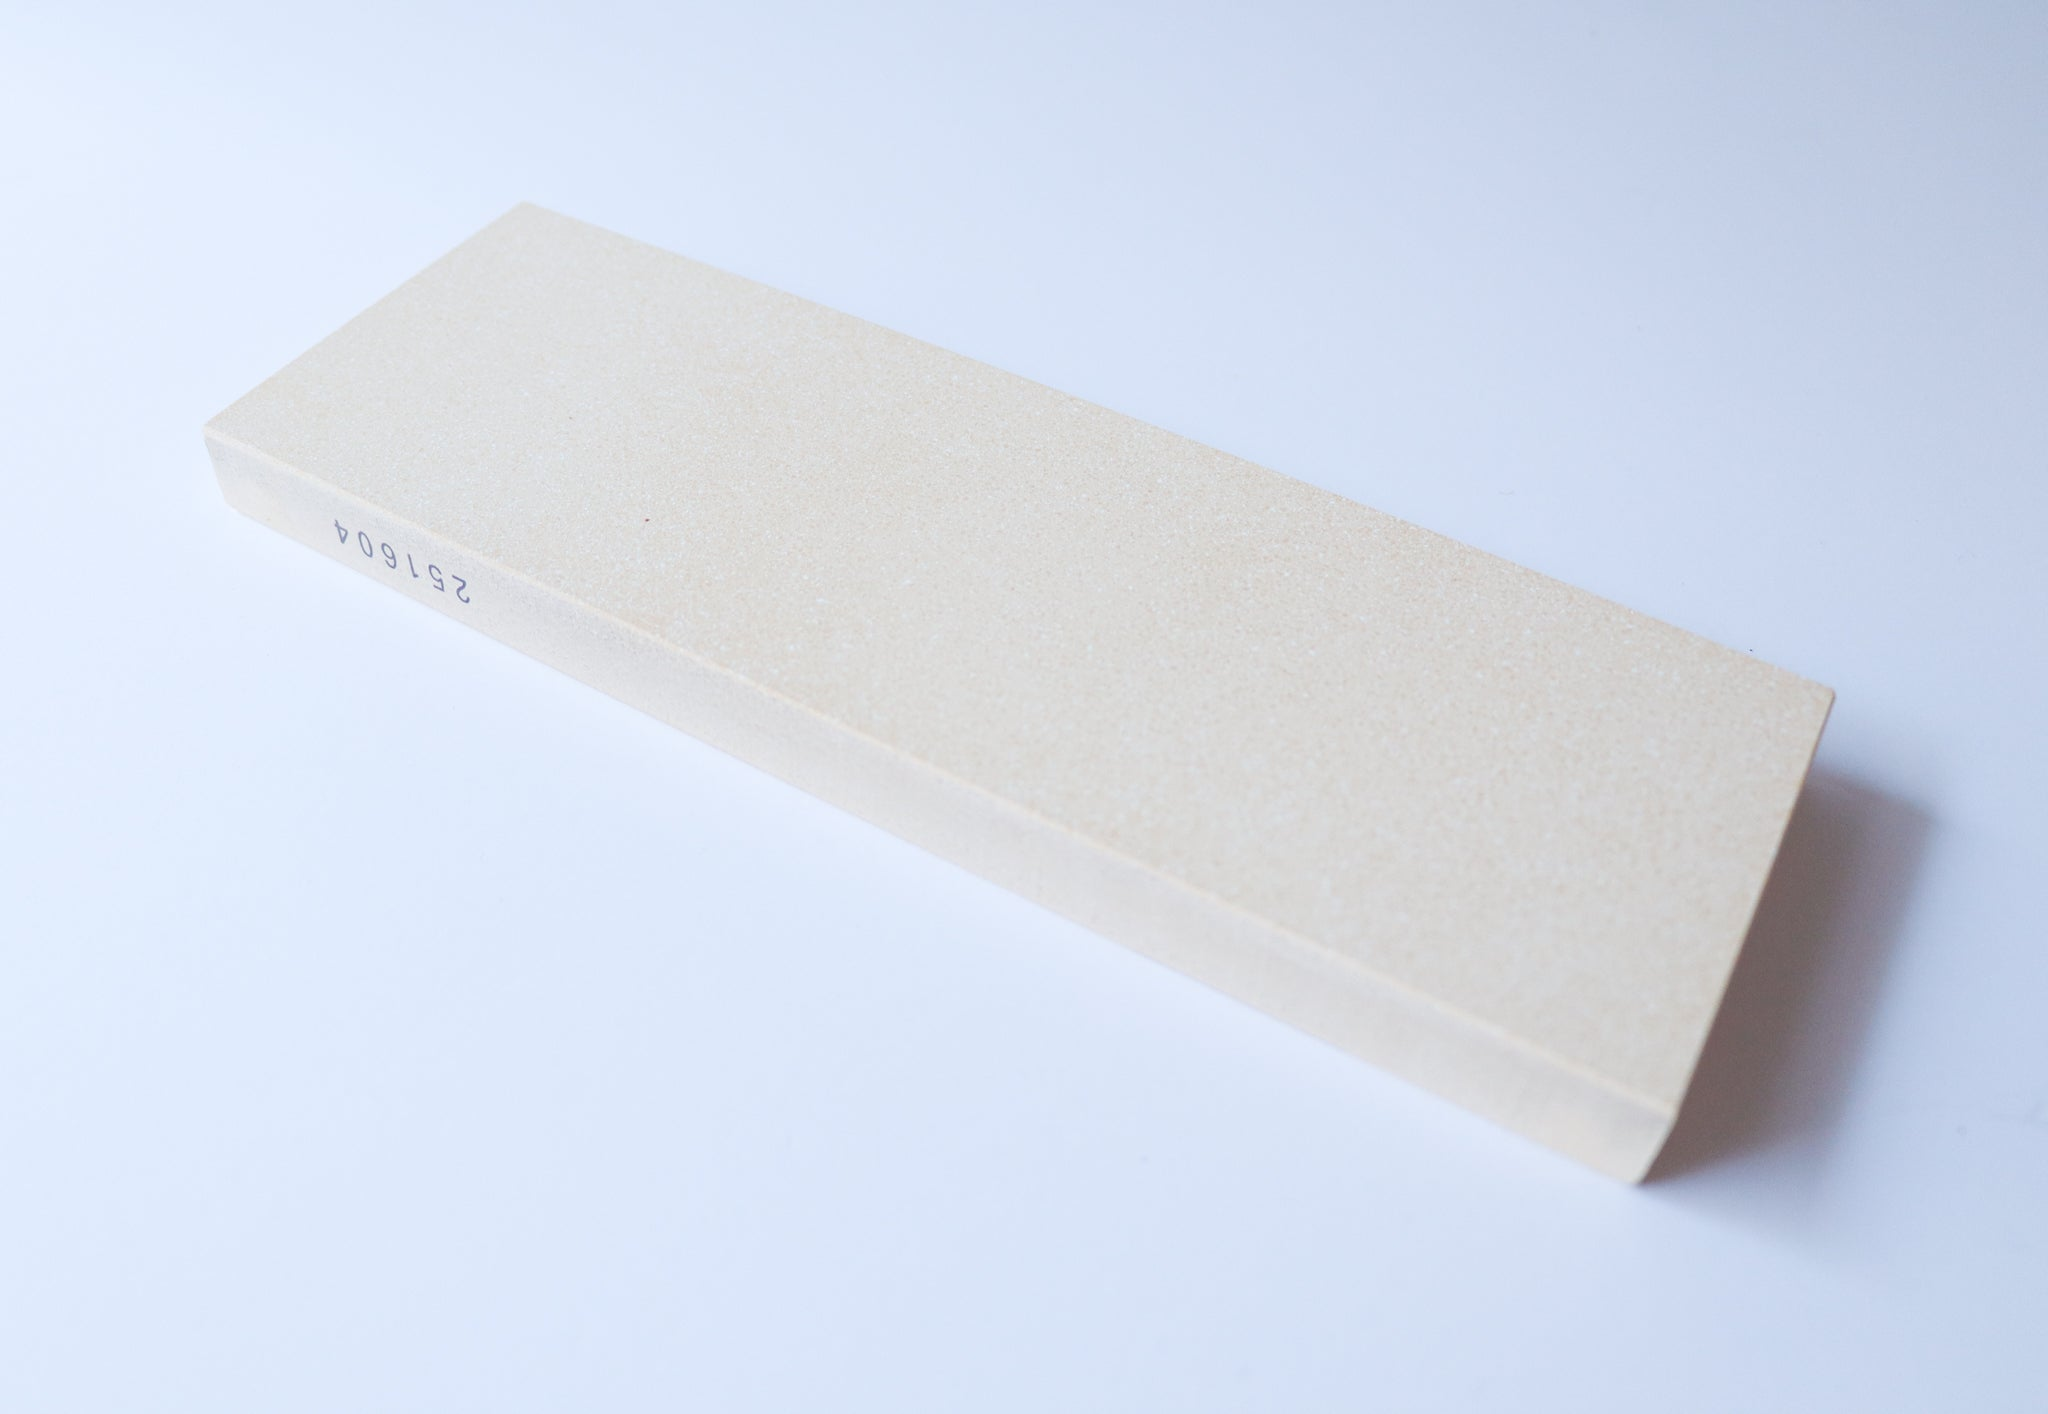 SHAPTON Sharpening Stone Yellow 12000, fine grit sharpening stone